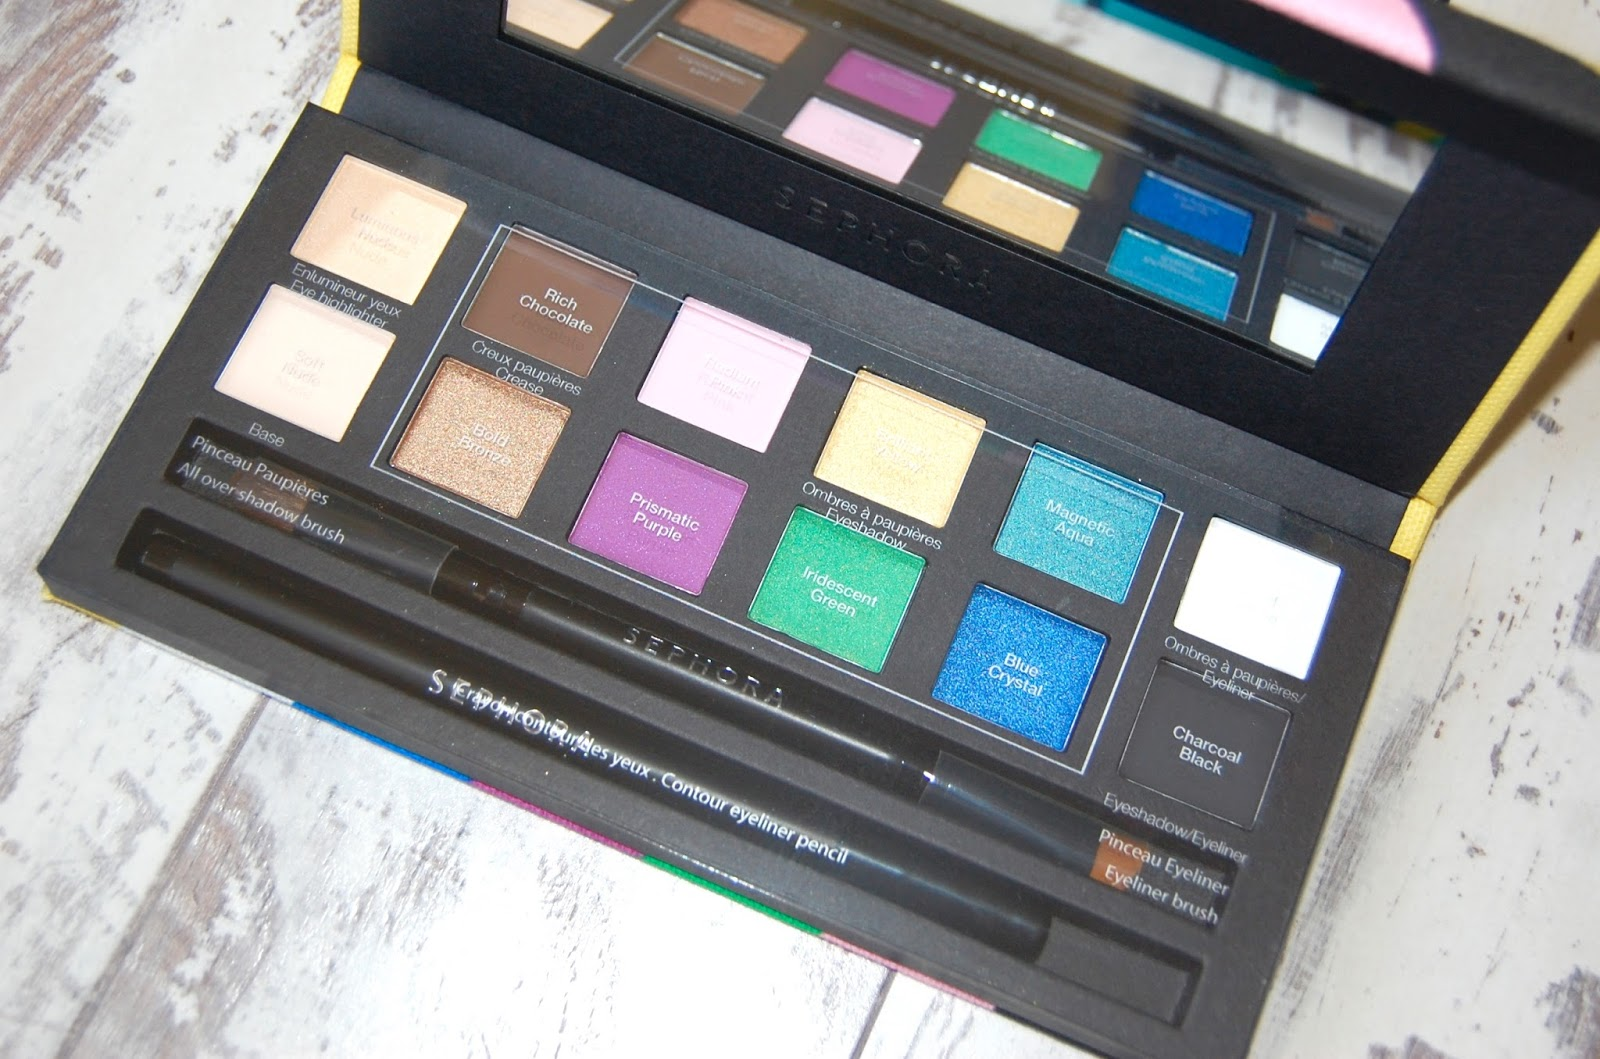 Sephora eyeshadow palette with bright coloured packaging and the same bright colours inside.